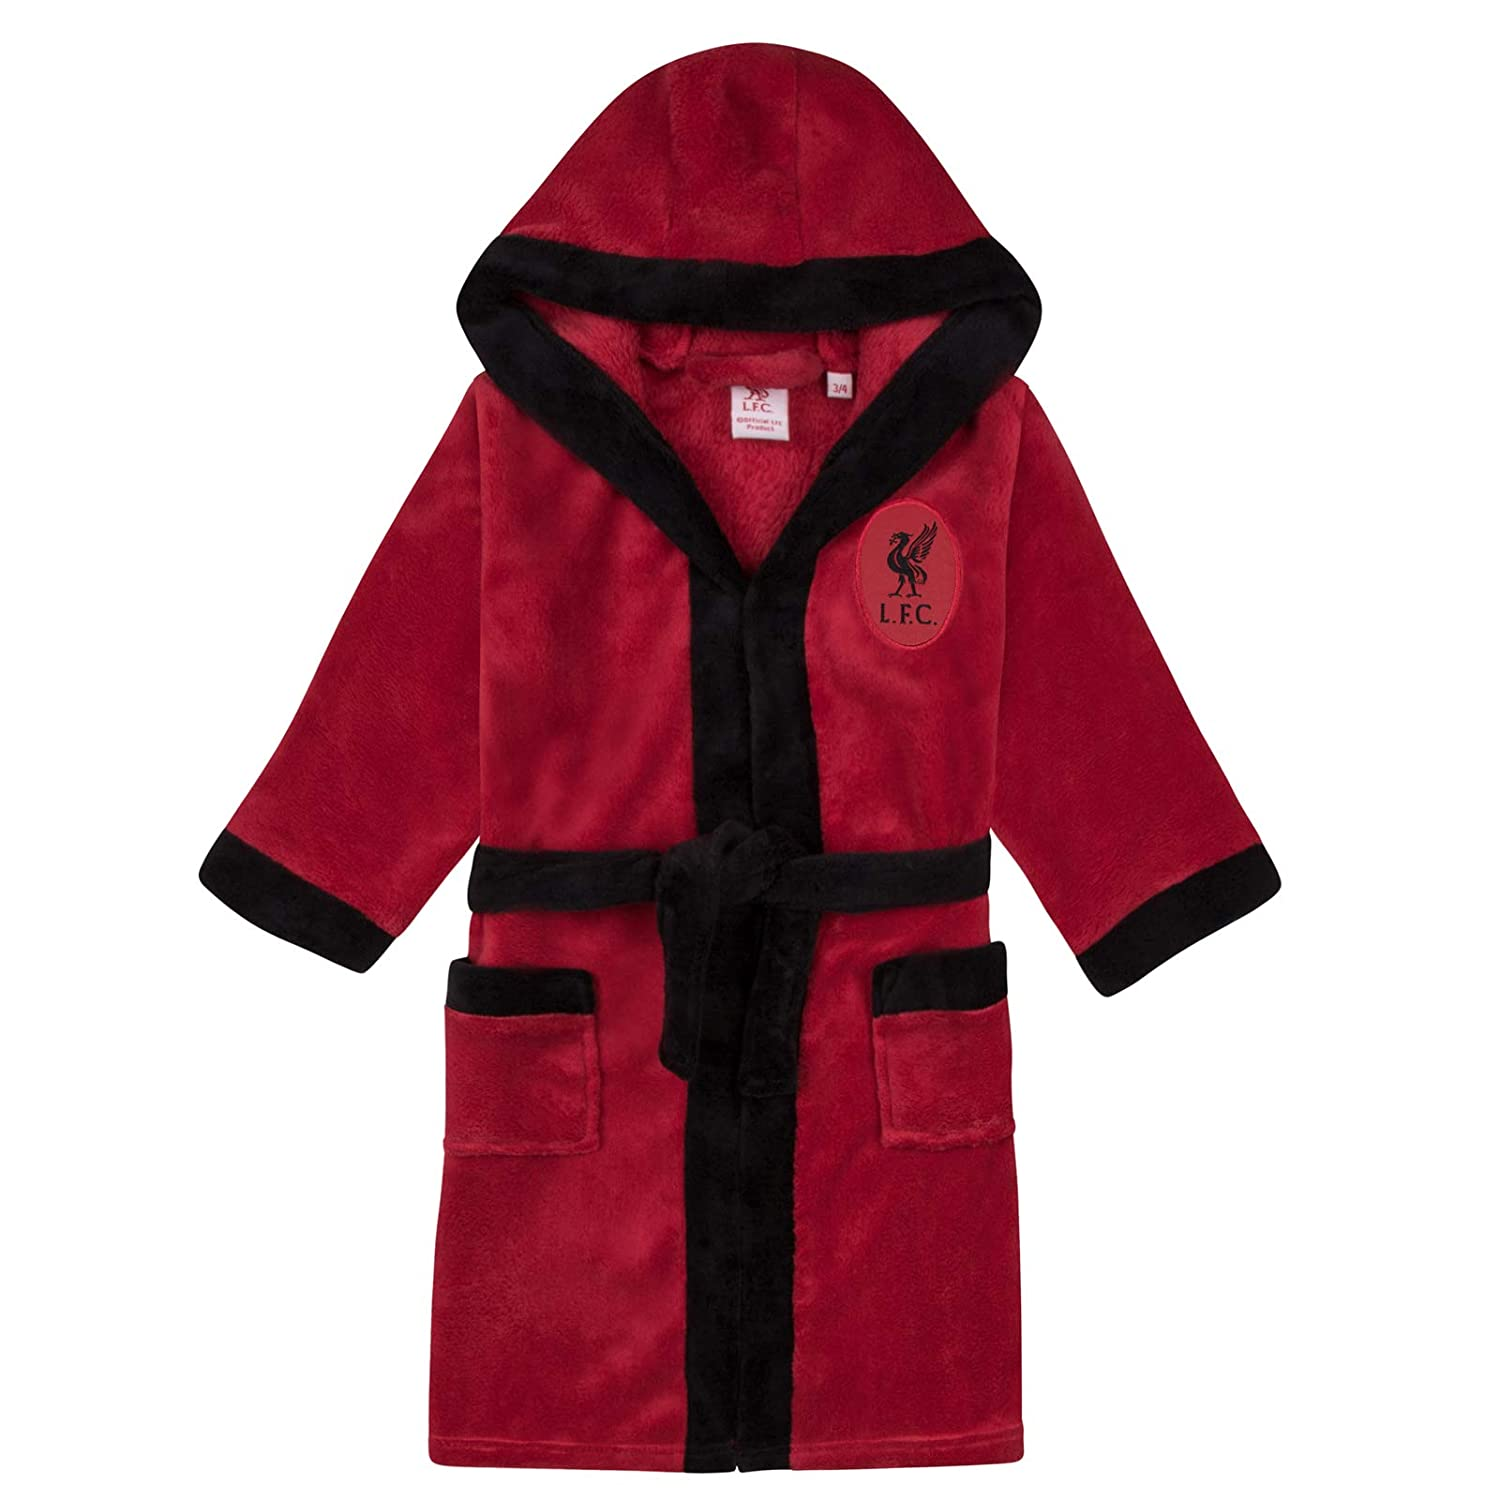 Liverpool FC Official Football Gift Boys Hooded Fleece Dressing Gown Robe